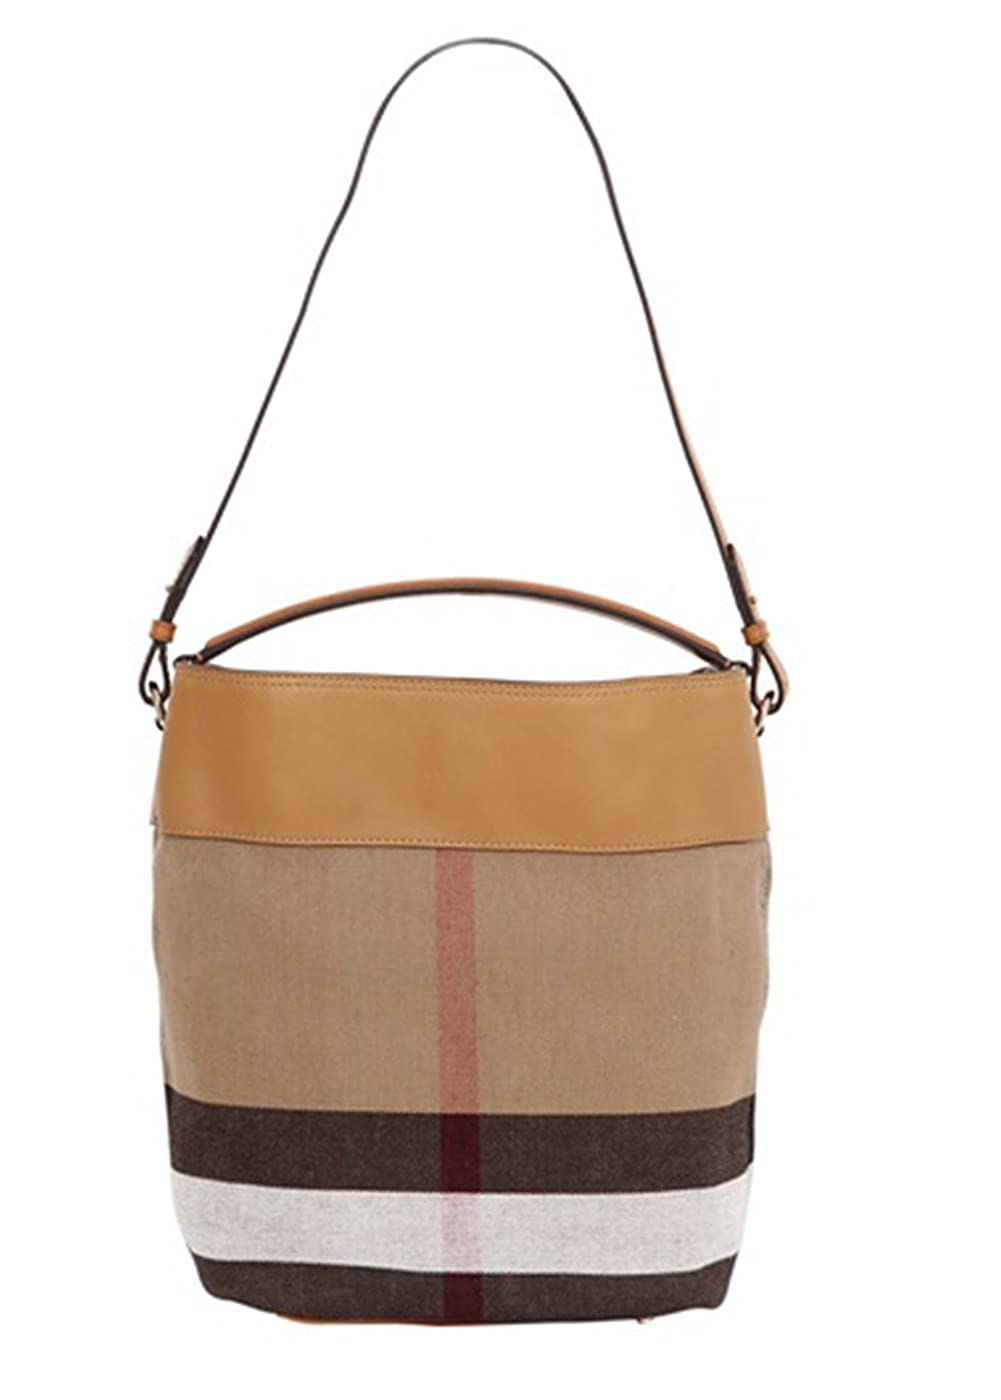 46ac0a7c8 Amazon.com: Burberry Women's Medium Ashby in Canvas check and Leather Brown:  Clothing